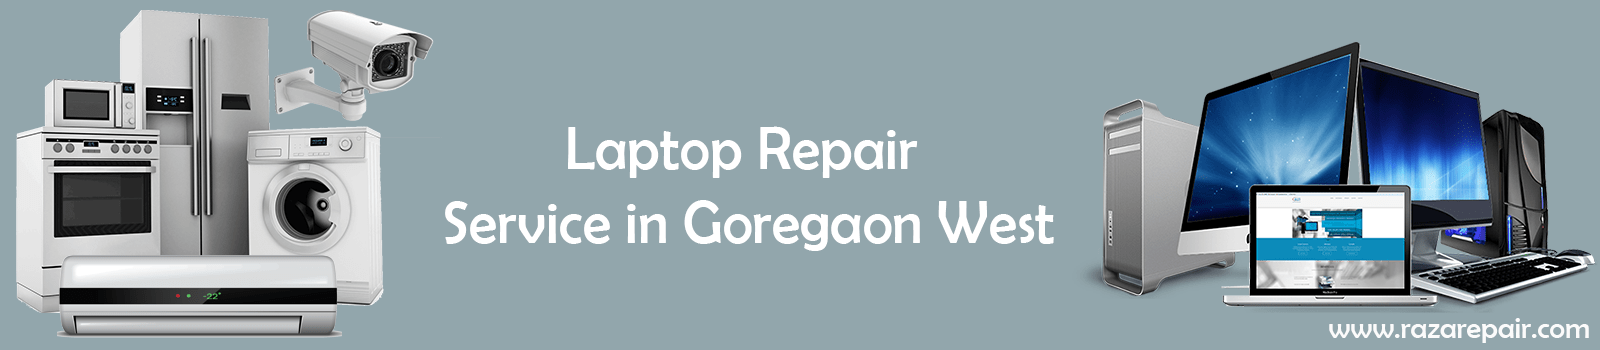 Laptop Repair Service in Goregaon West | Call Now 8655112626